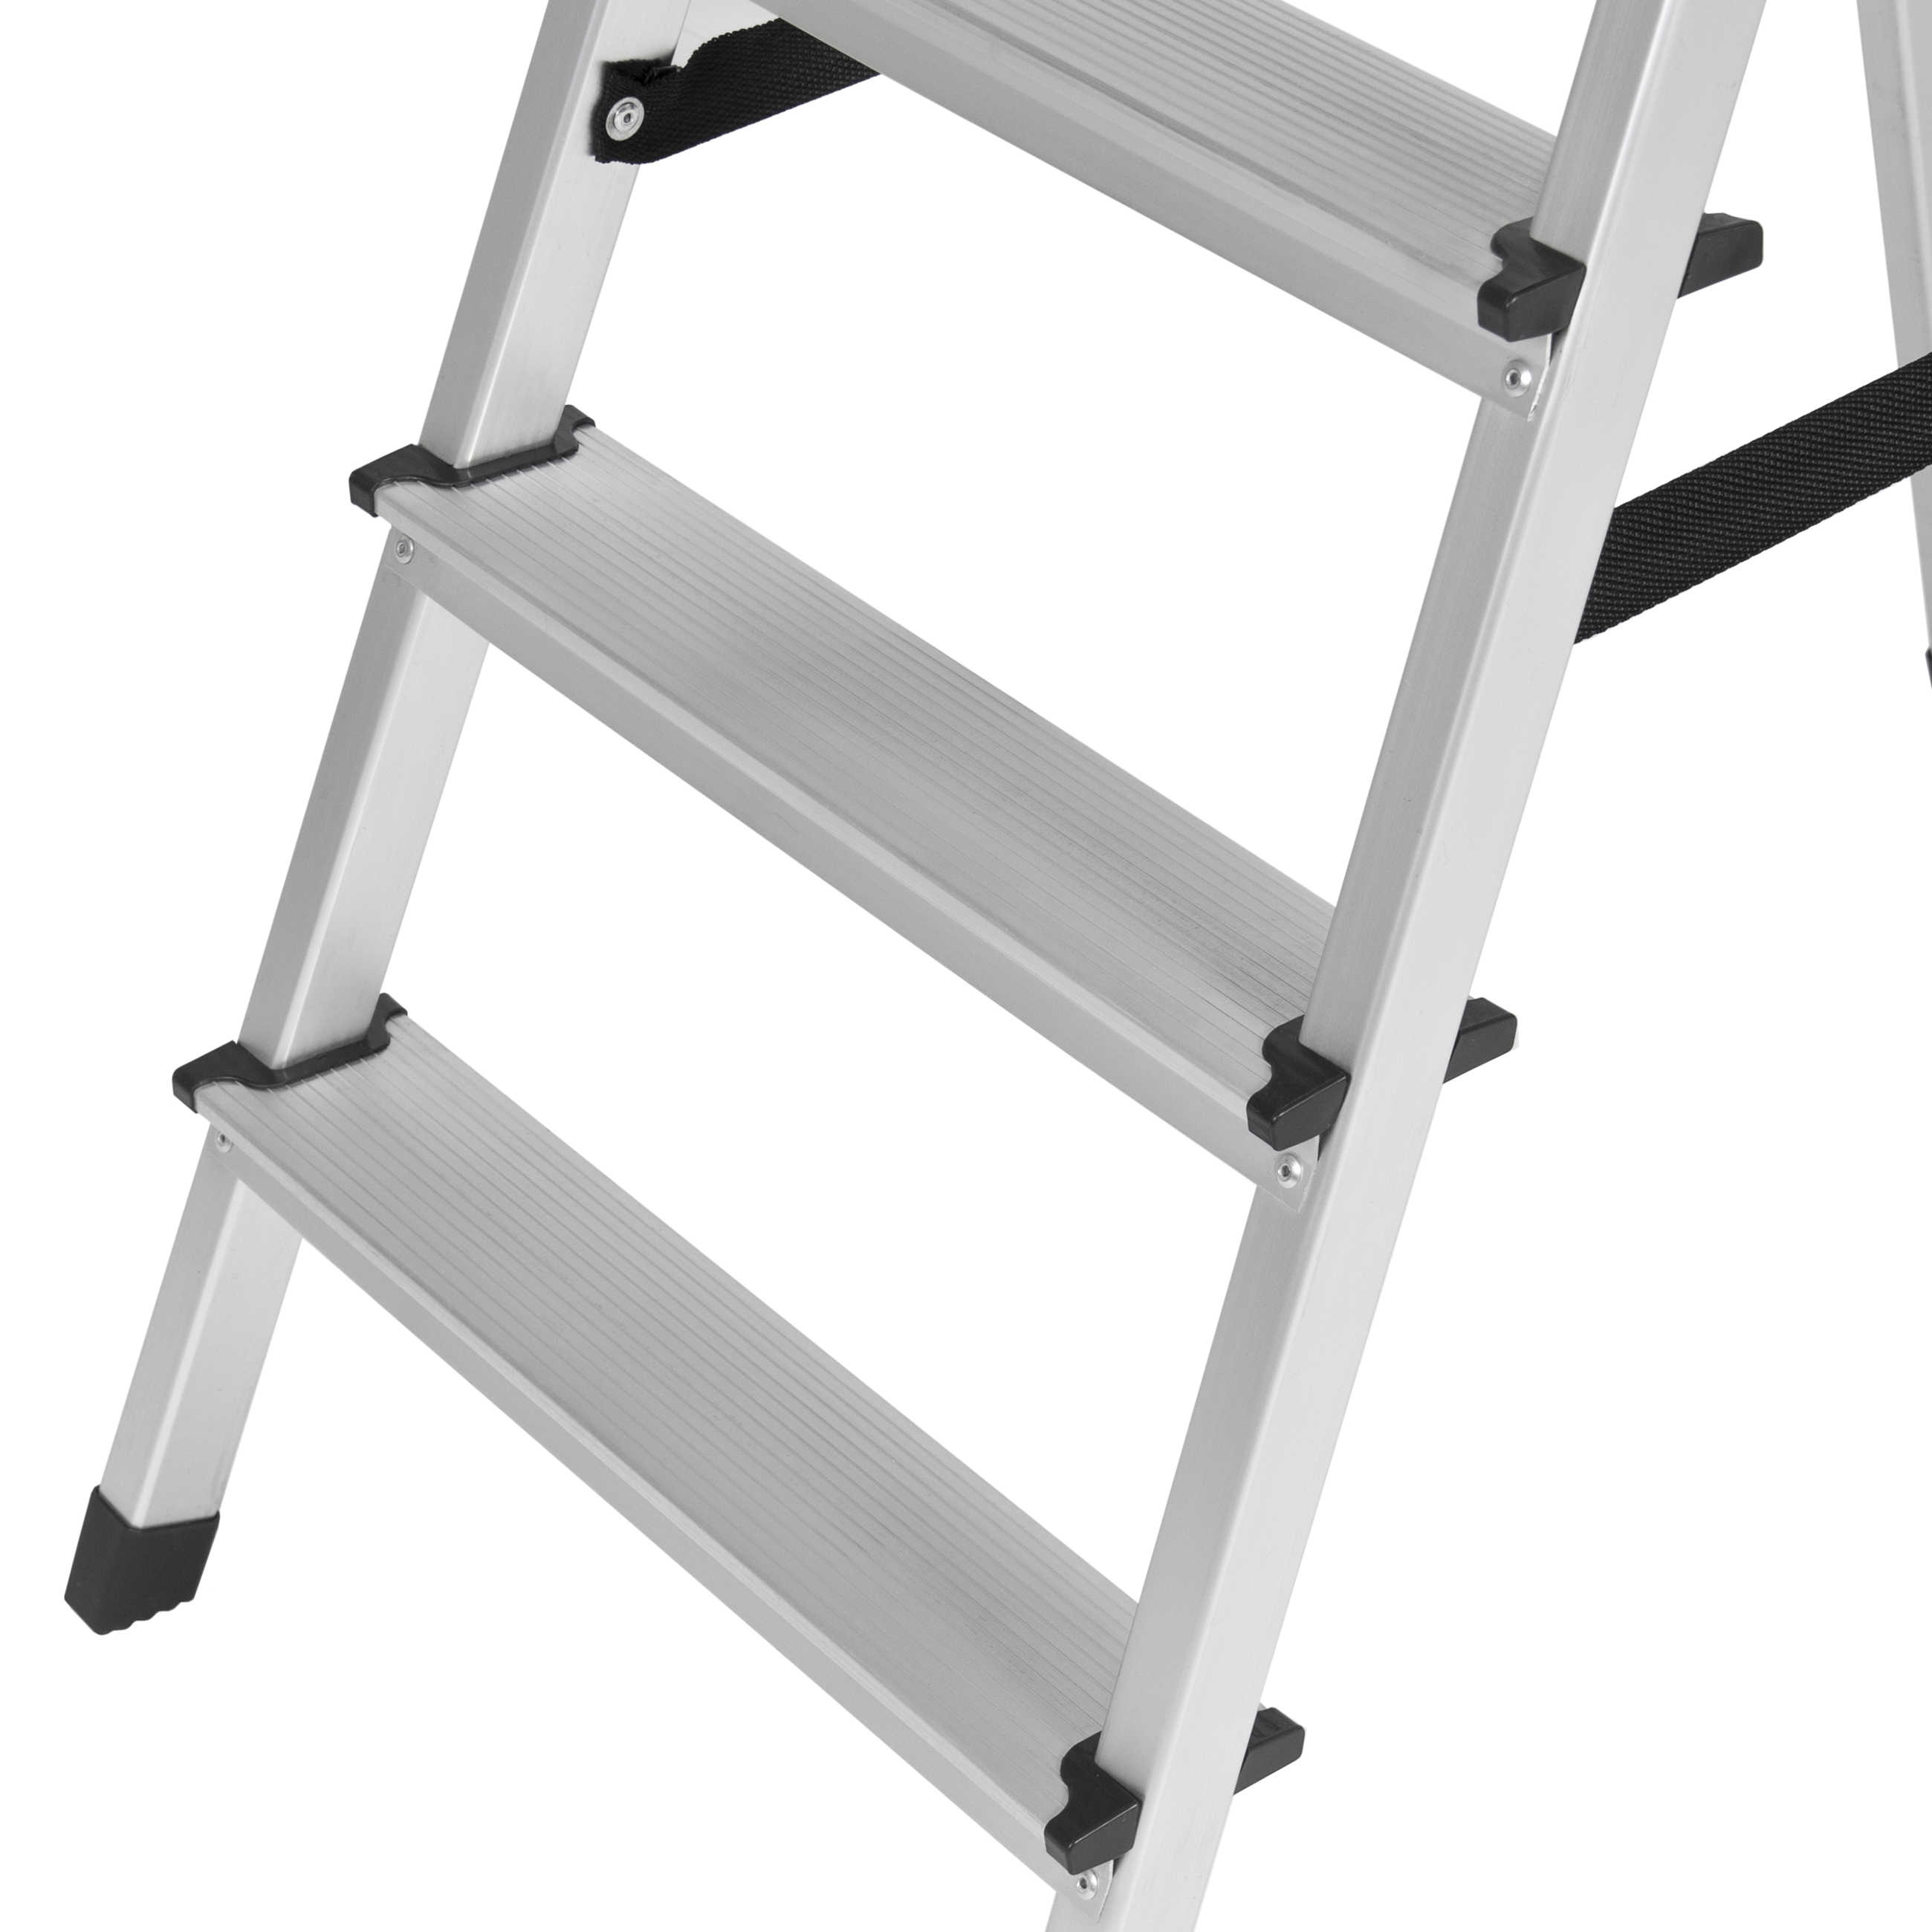 Best Choice Products BCP 300lbs Aluminum Foldable 5 Step Non-slip Ladder Lightweight Kitchen Garage